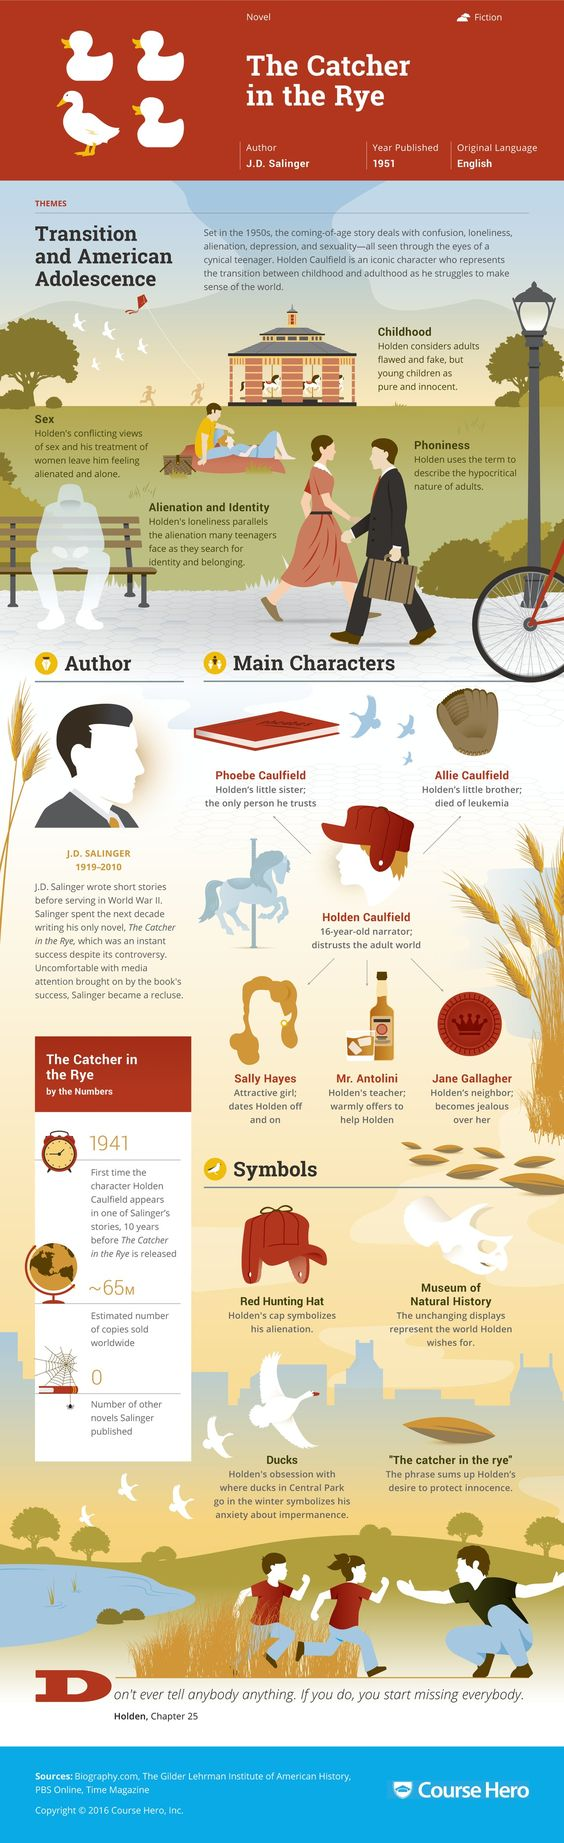 a literary analysis of holden in the catcher in the rye by j d salinger This one-page guide includes a plot summary and brief analysis of catcher in the rye by jd  catcher in the rye  that holden caulfield could be salinger.